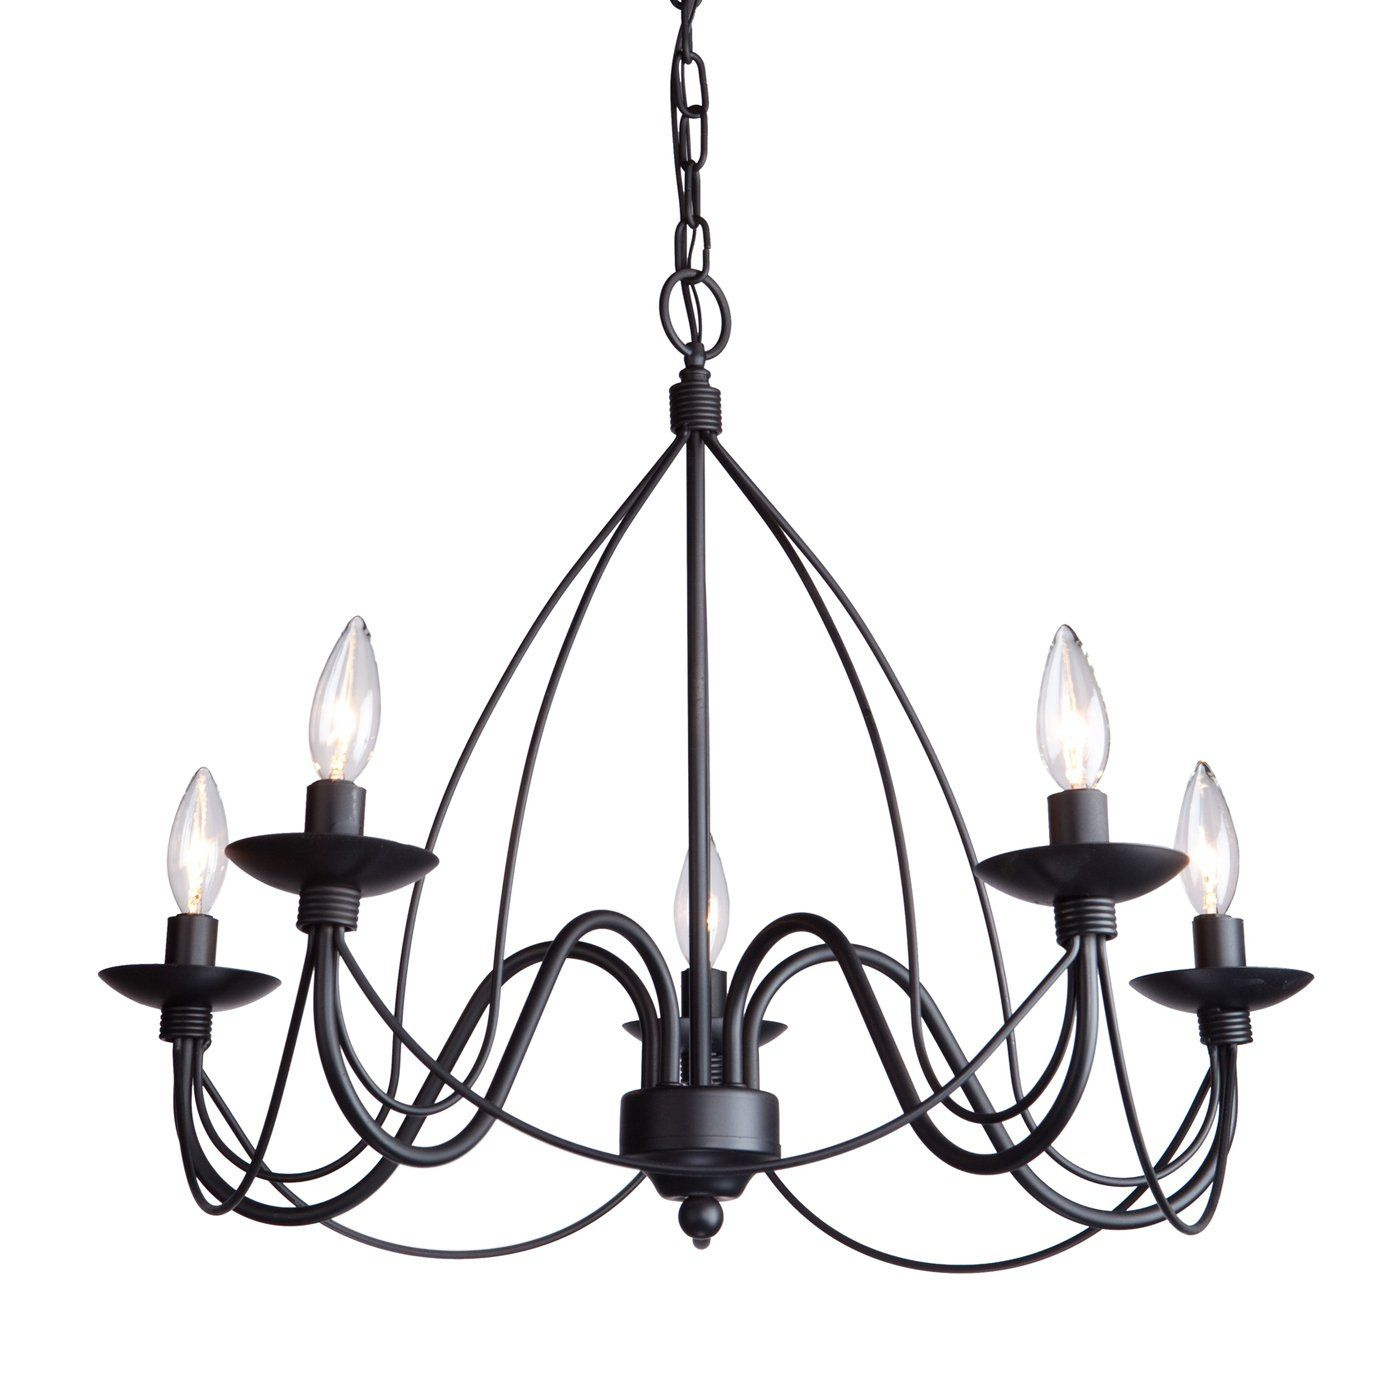 Artcraft Lighting Ac1485 Wrought Iron 5 Light Chandelier With Regard To Diaz 6 Light Candle Style Chandeliers (View 10 of 30)